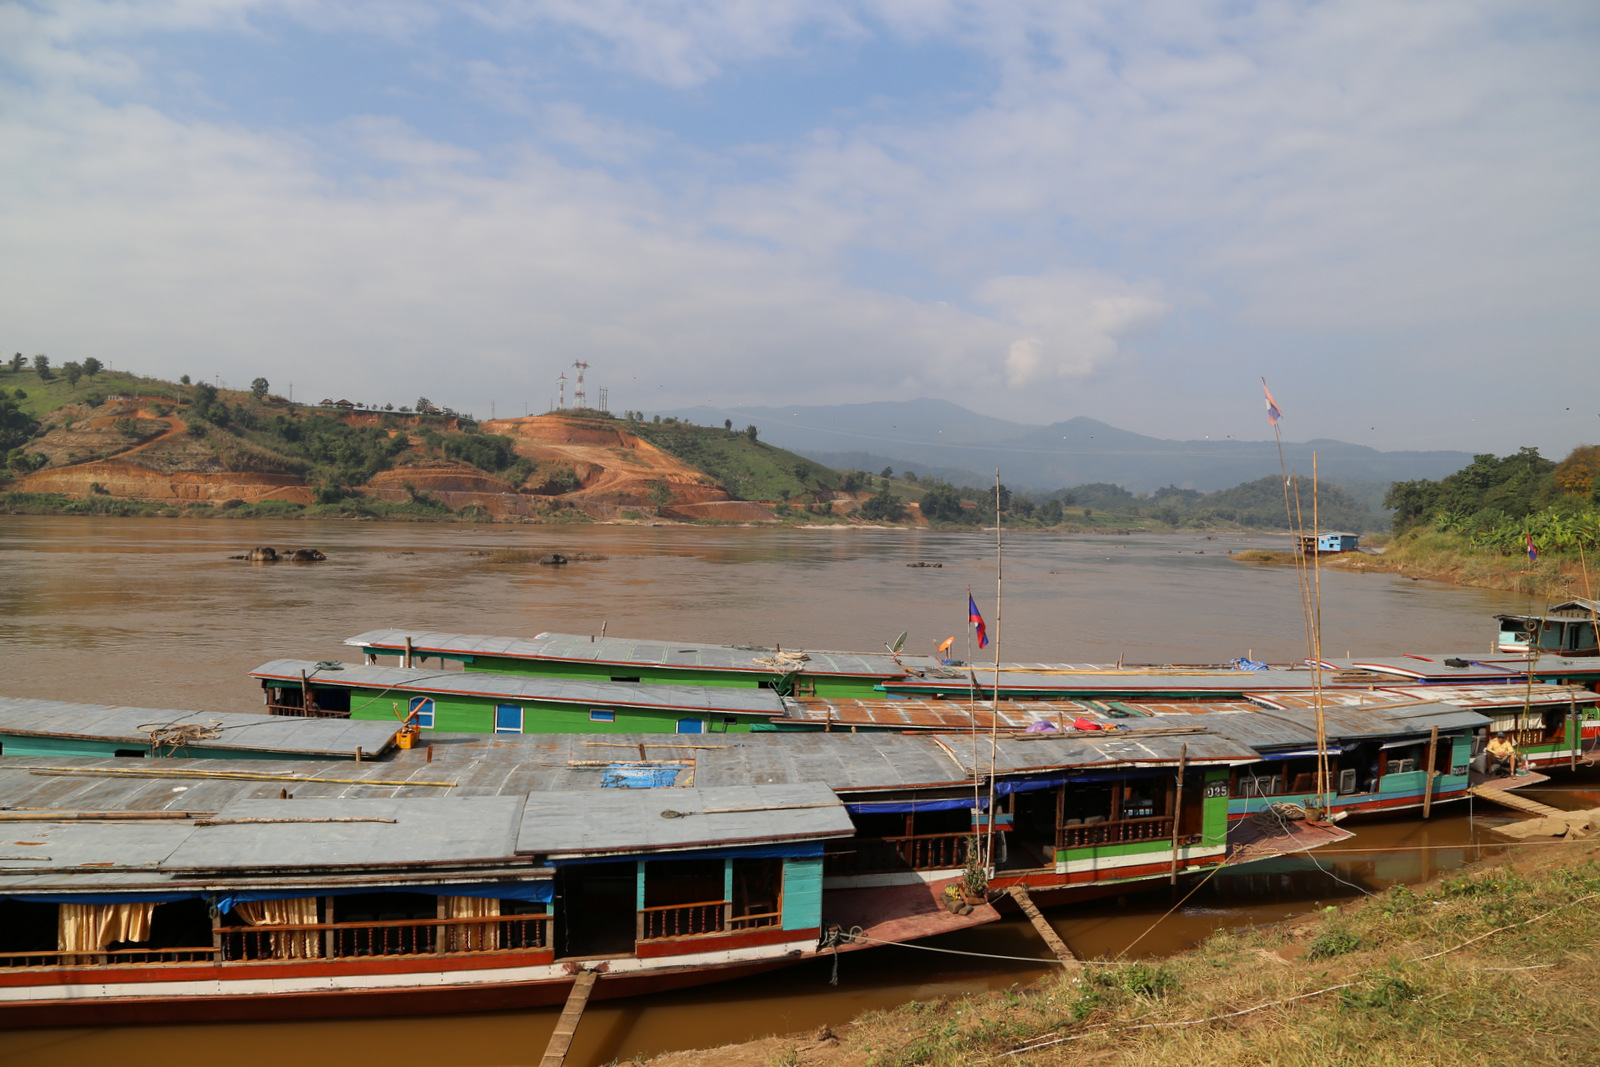 Houei Say, the starting point of the Mekong cruise